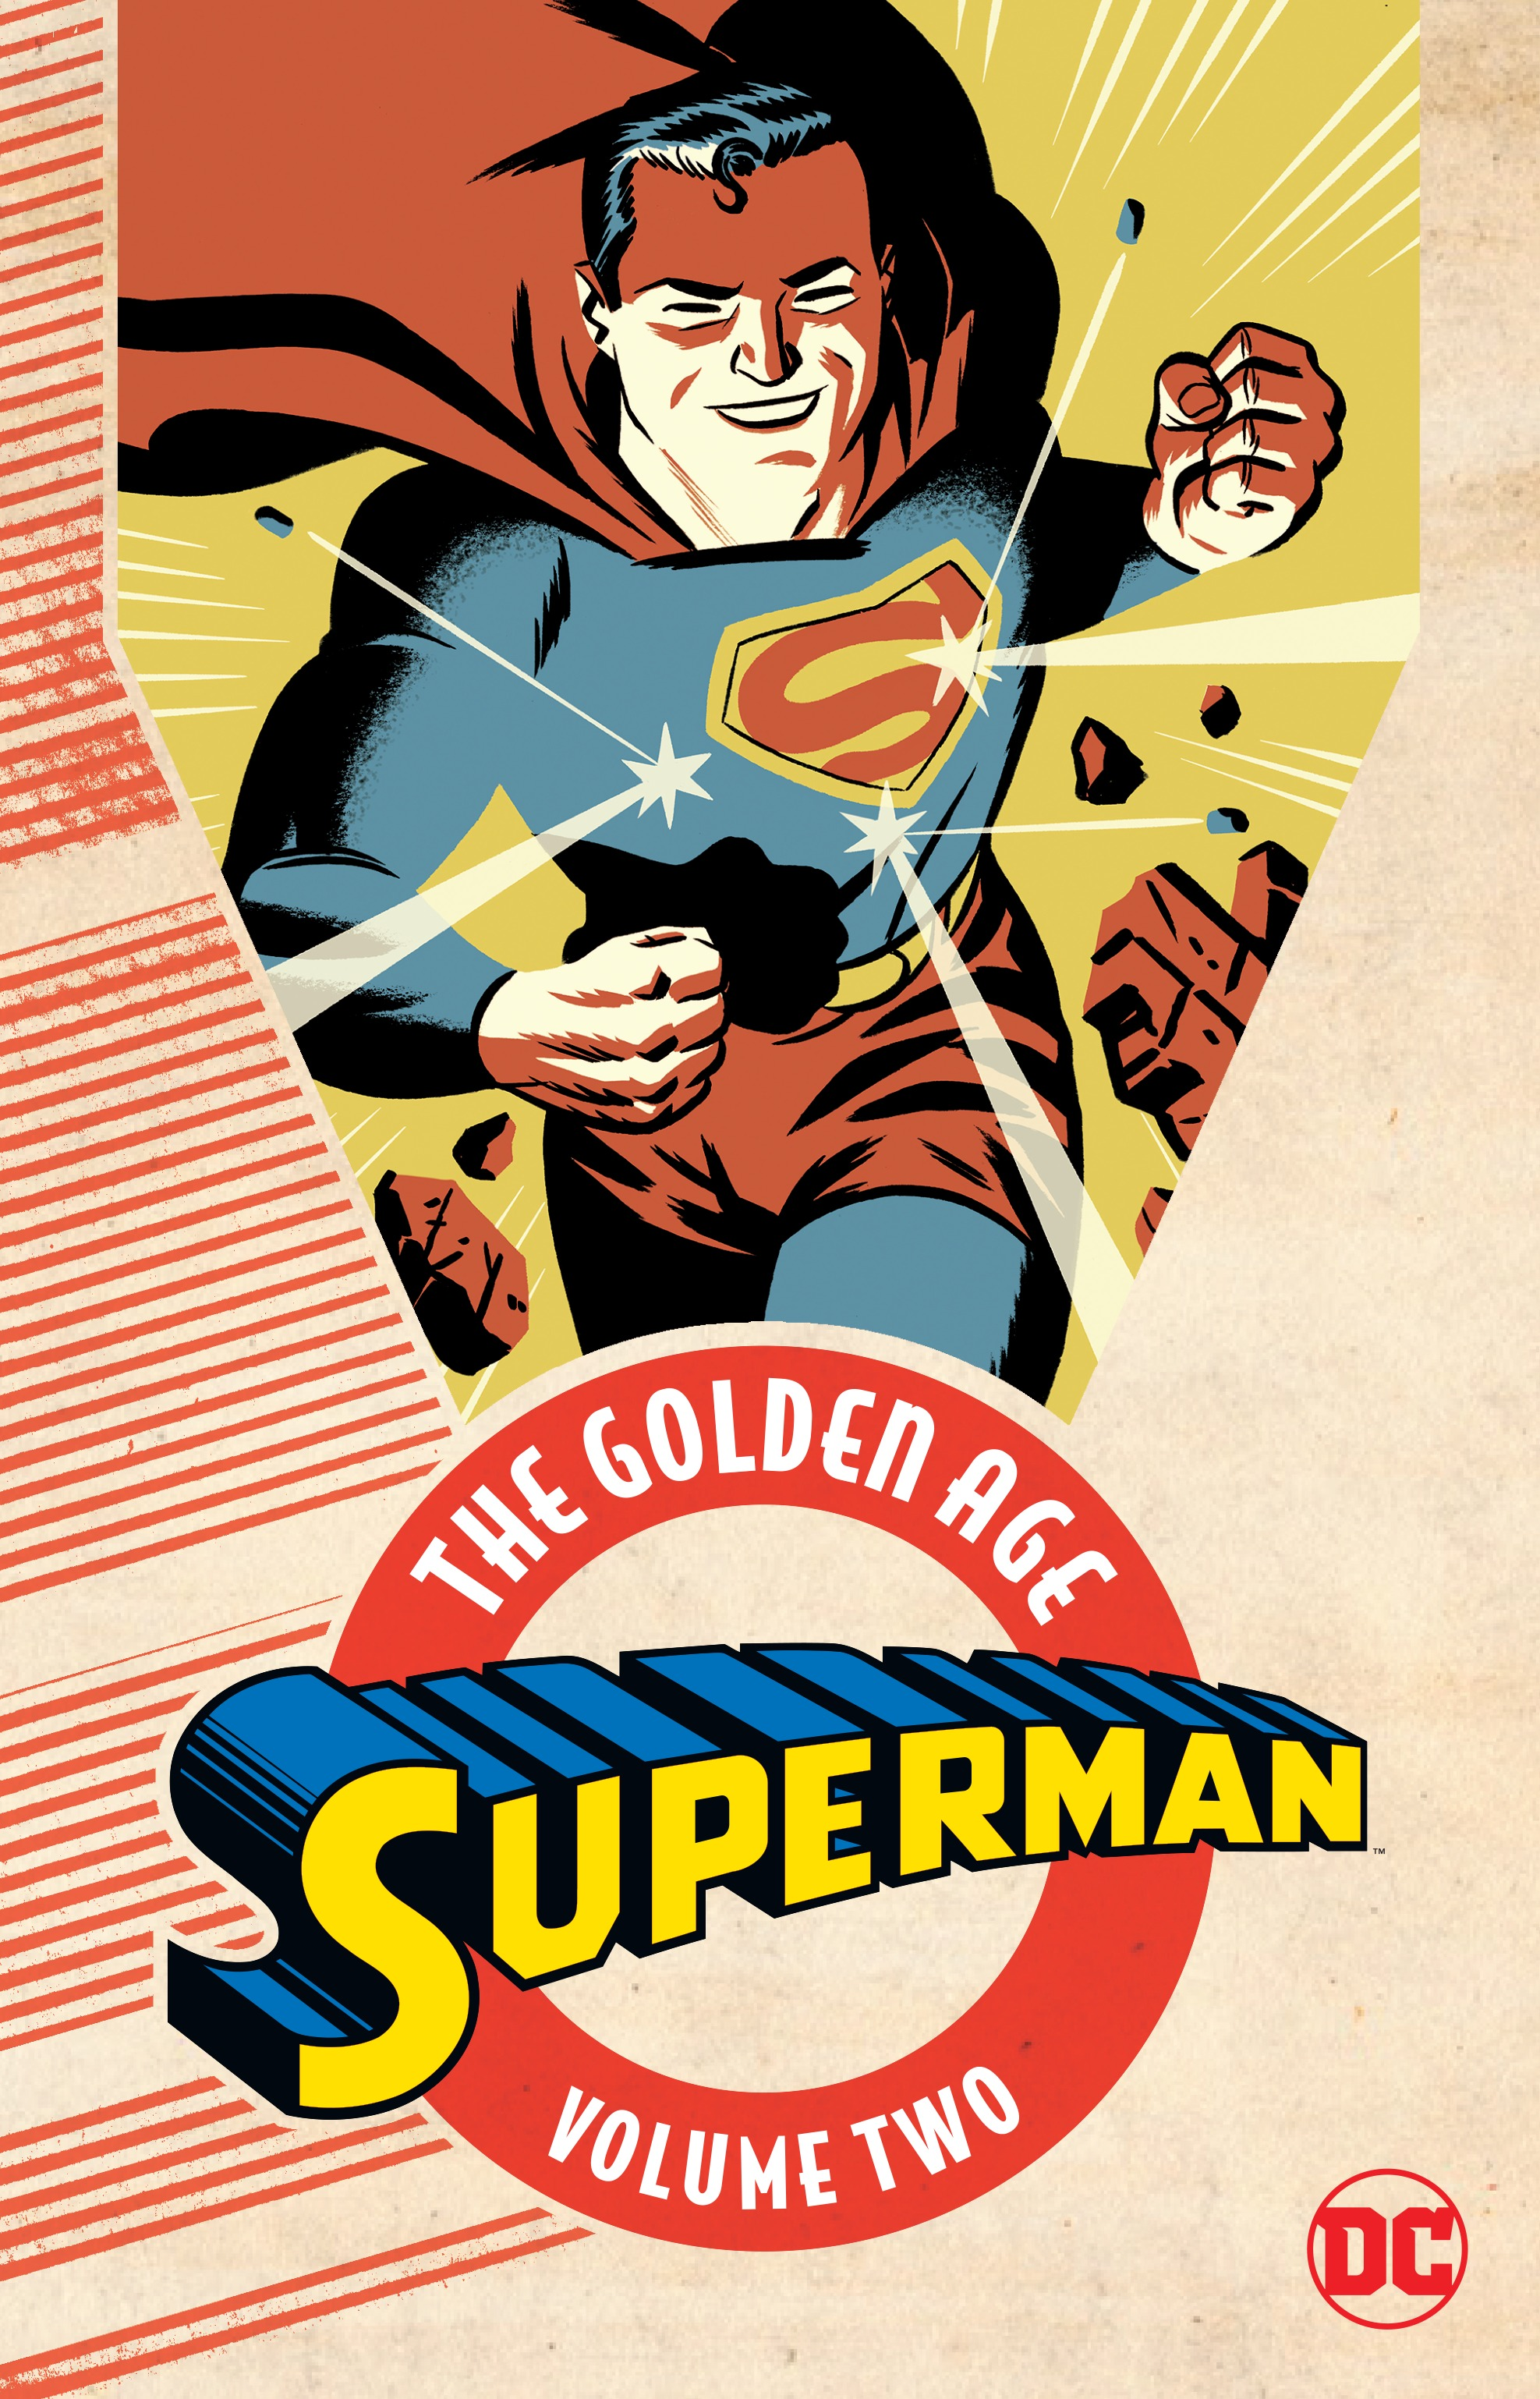 Superman: The Golden Age Vol. 2 batman the golden age vol 4